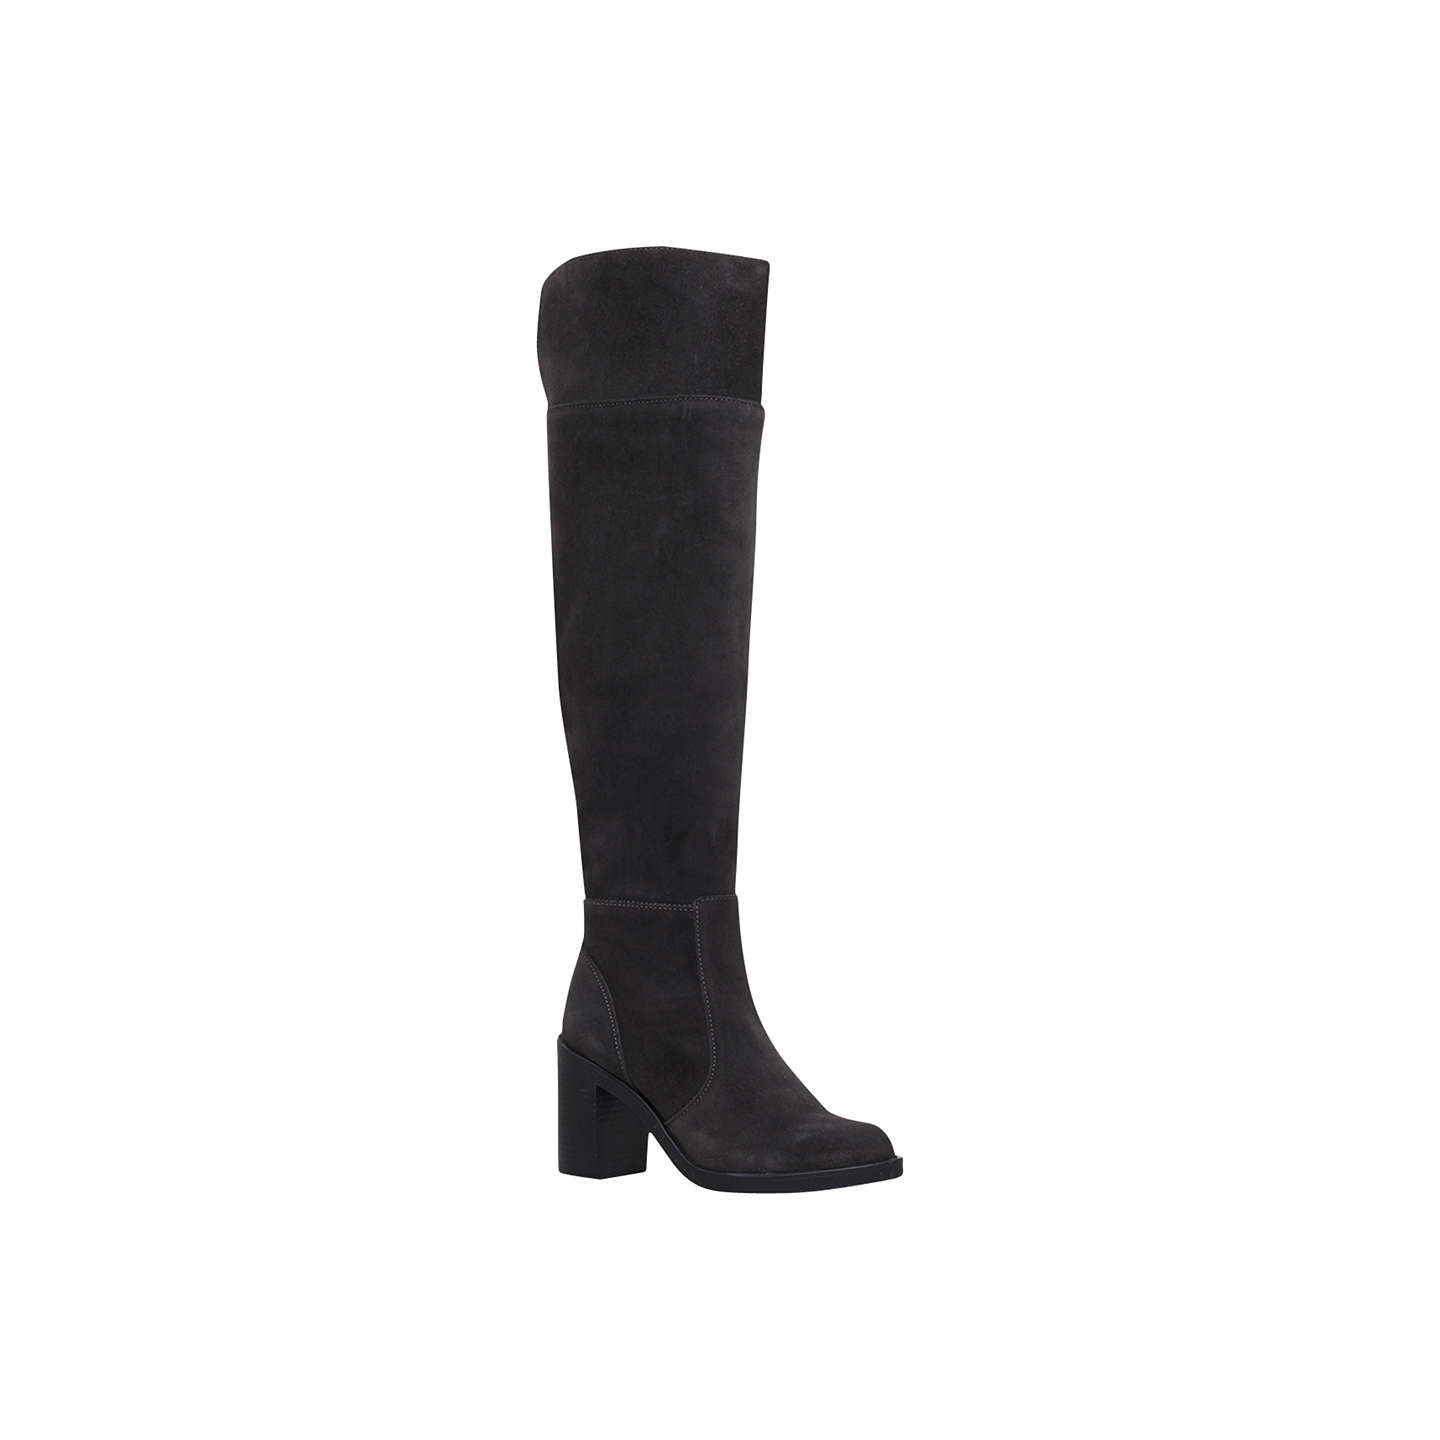 Tring Grey Mid Heel Over The Knee Boots By KG Kurt Geiger rUrcpiCd